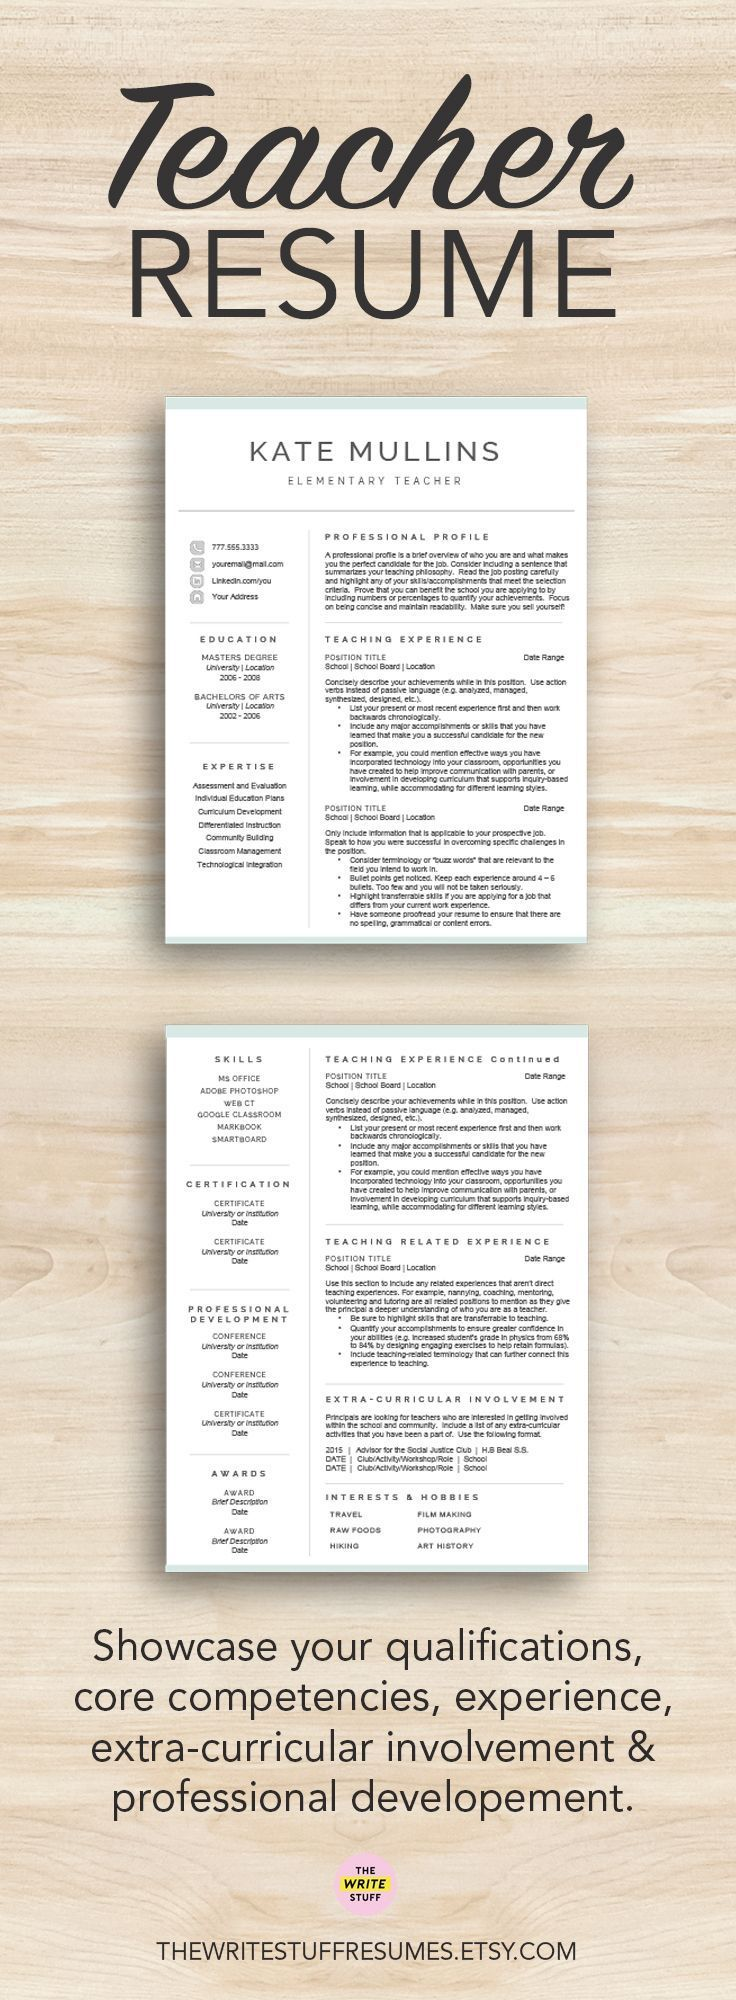 Teacher resume template for Word & Pages (1, 2 and 3 page CV ...